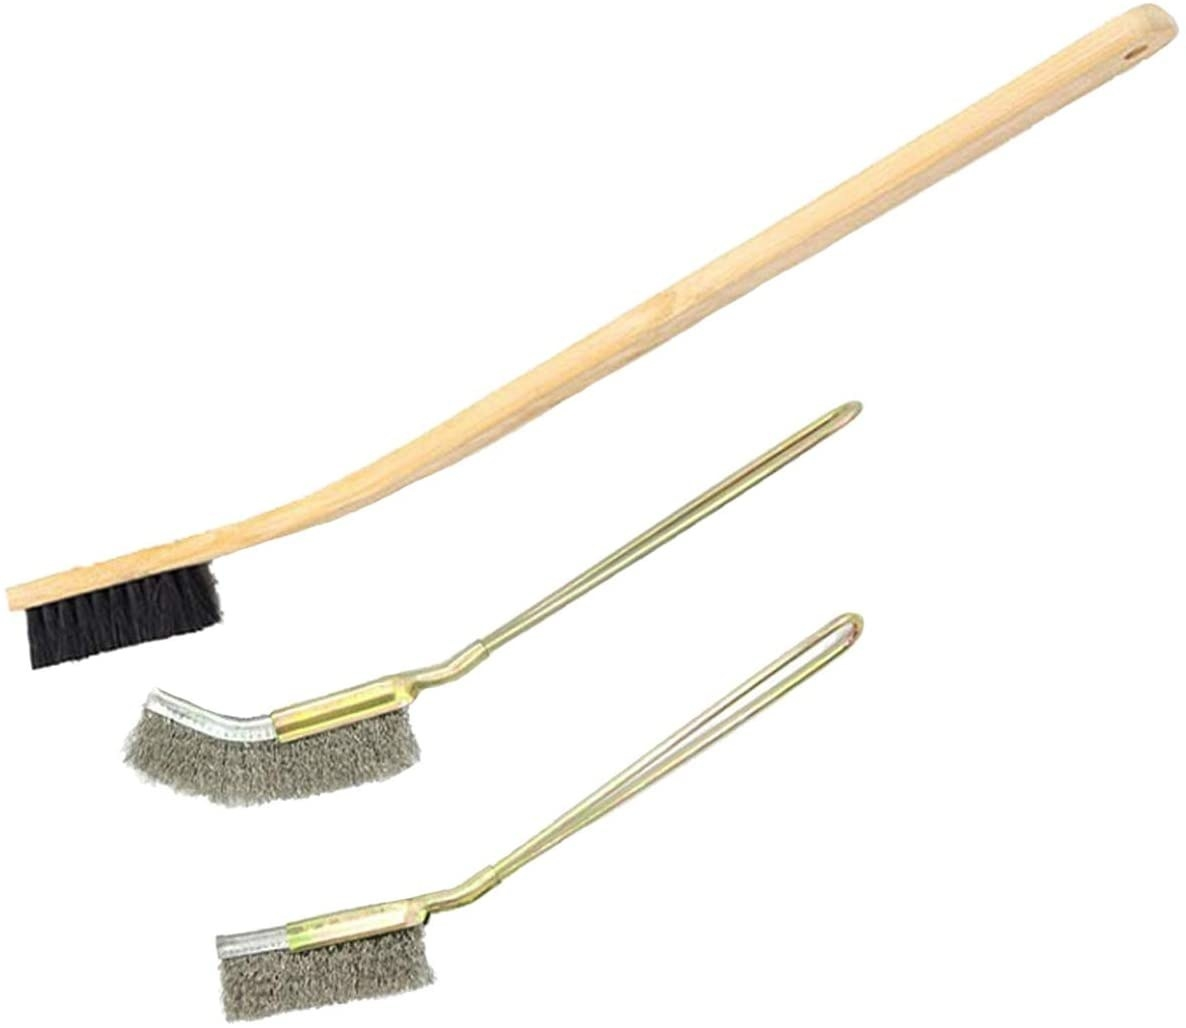 Three wooden and stainless steel cage cleaning brushes